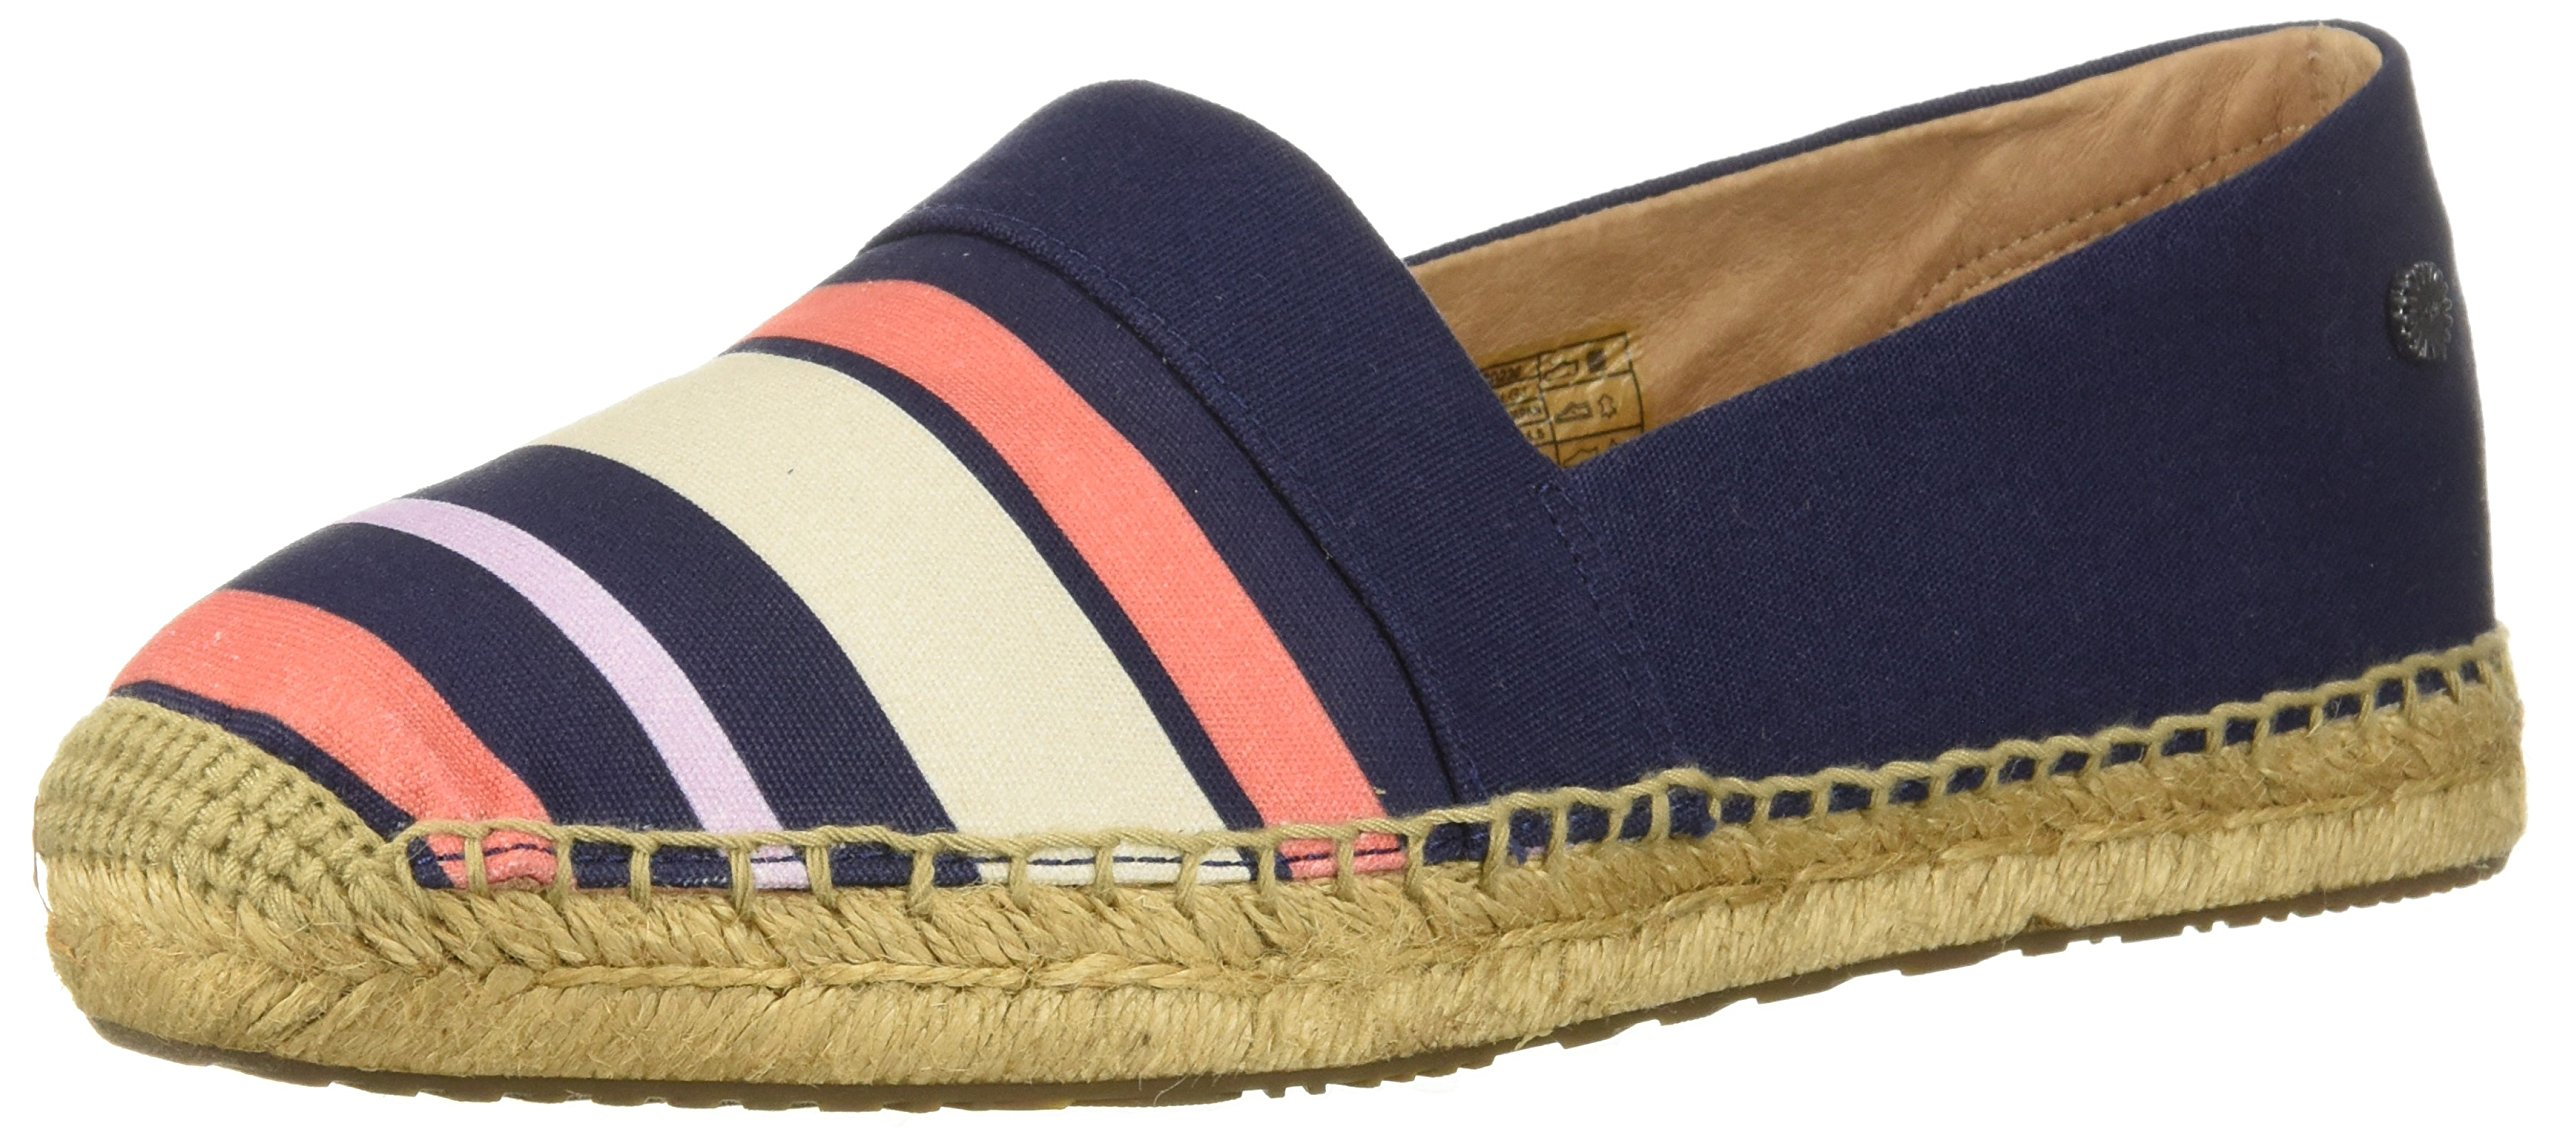 UGG Women's Reneda Stripe Loafer Flat, Navy, 10 M US